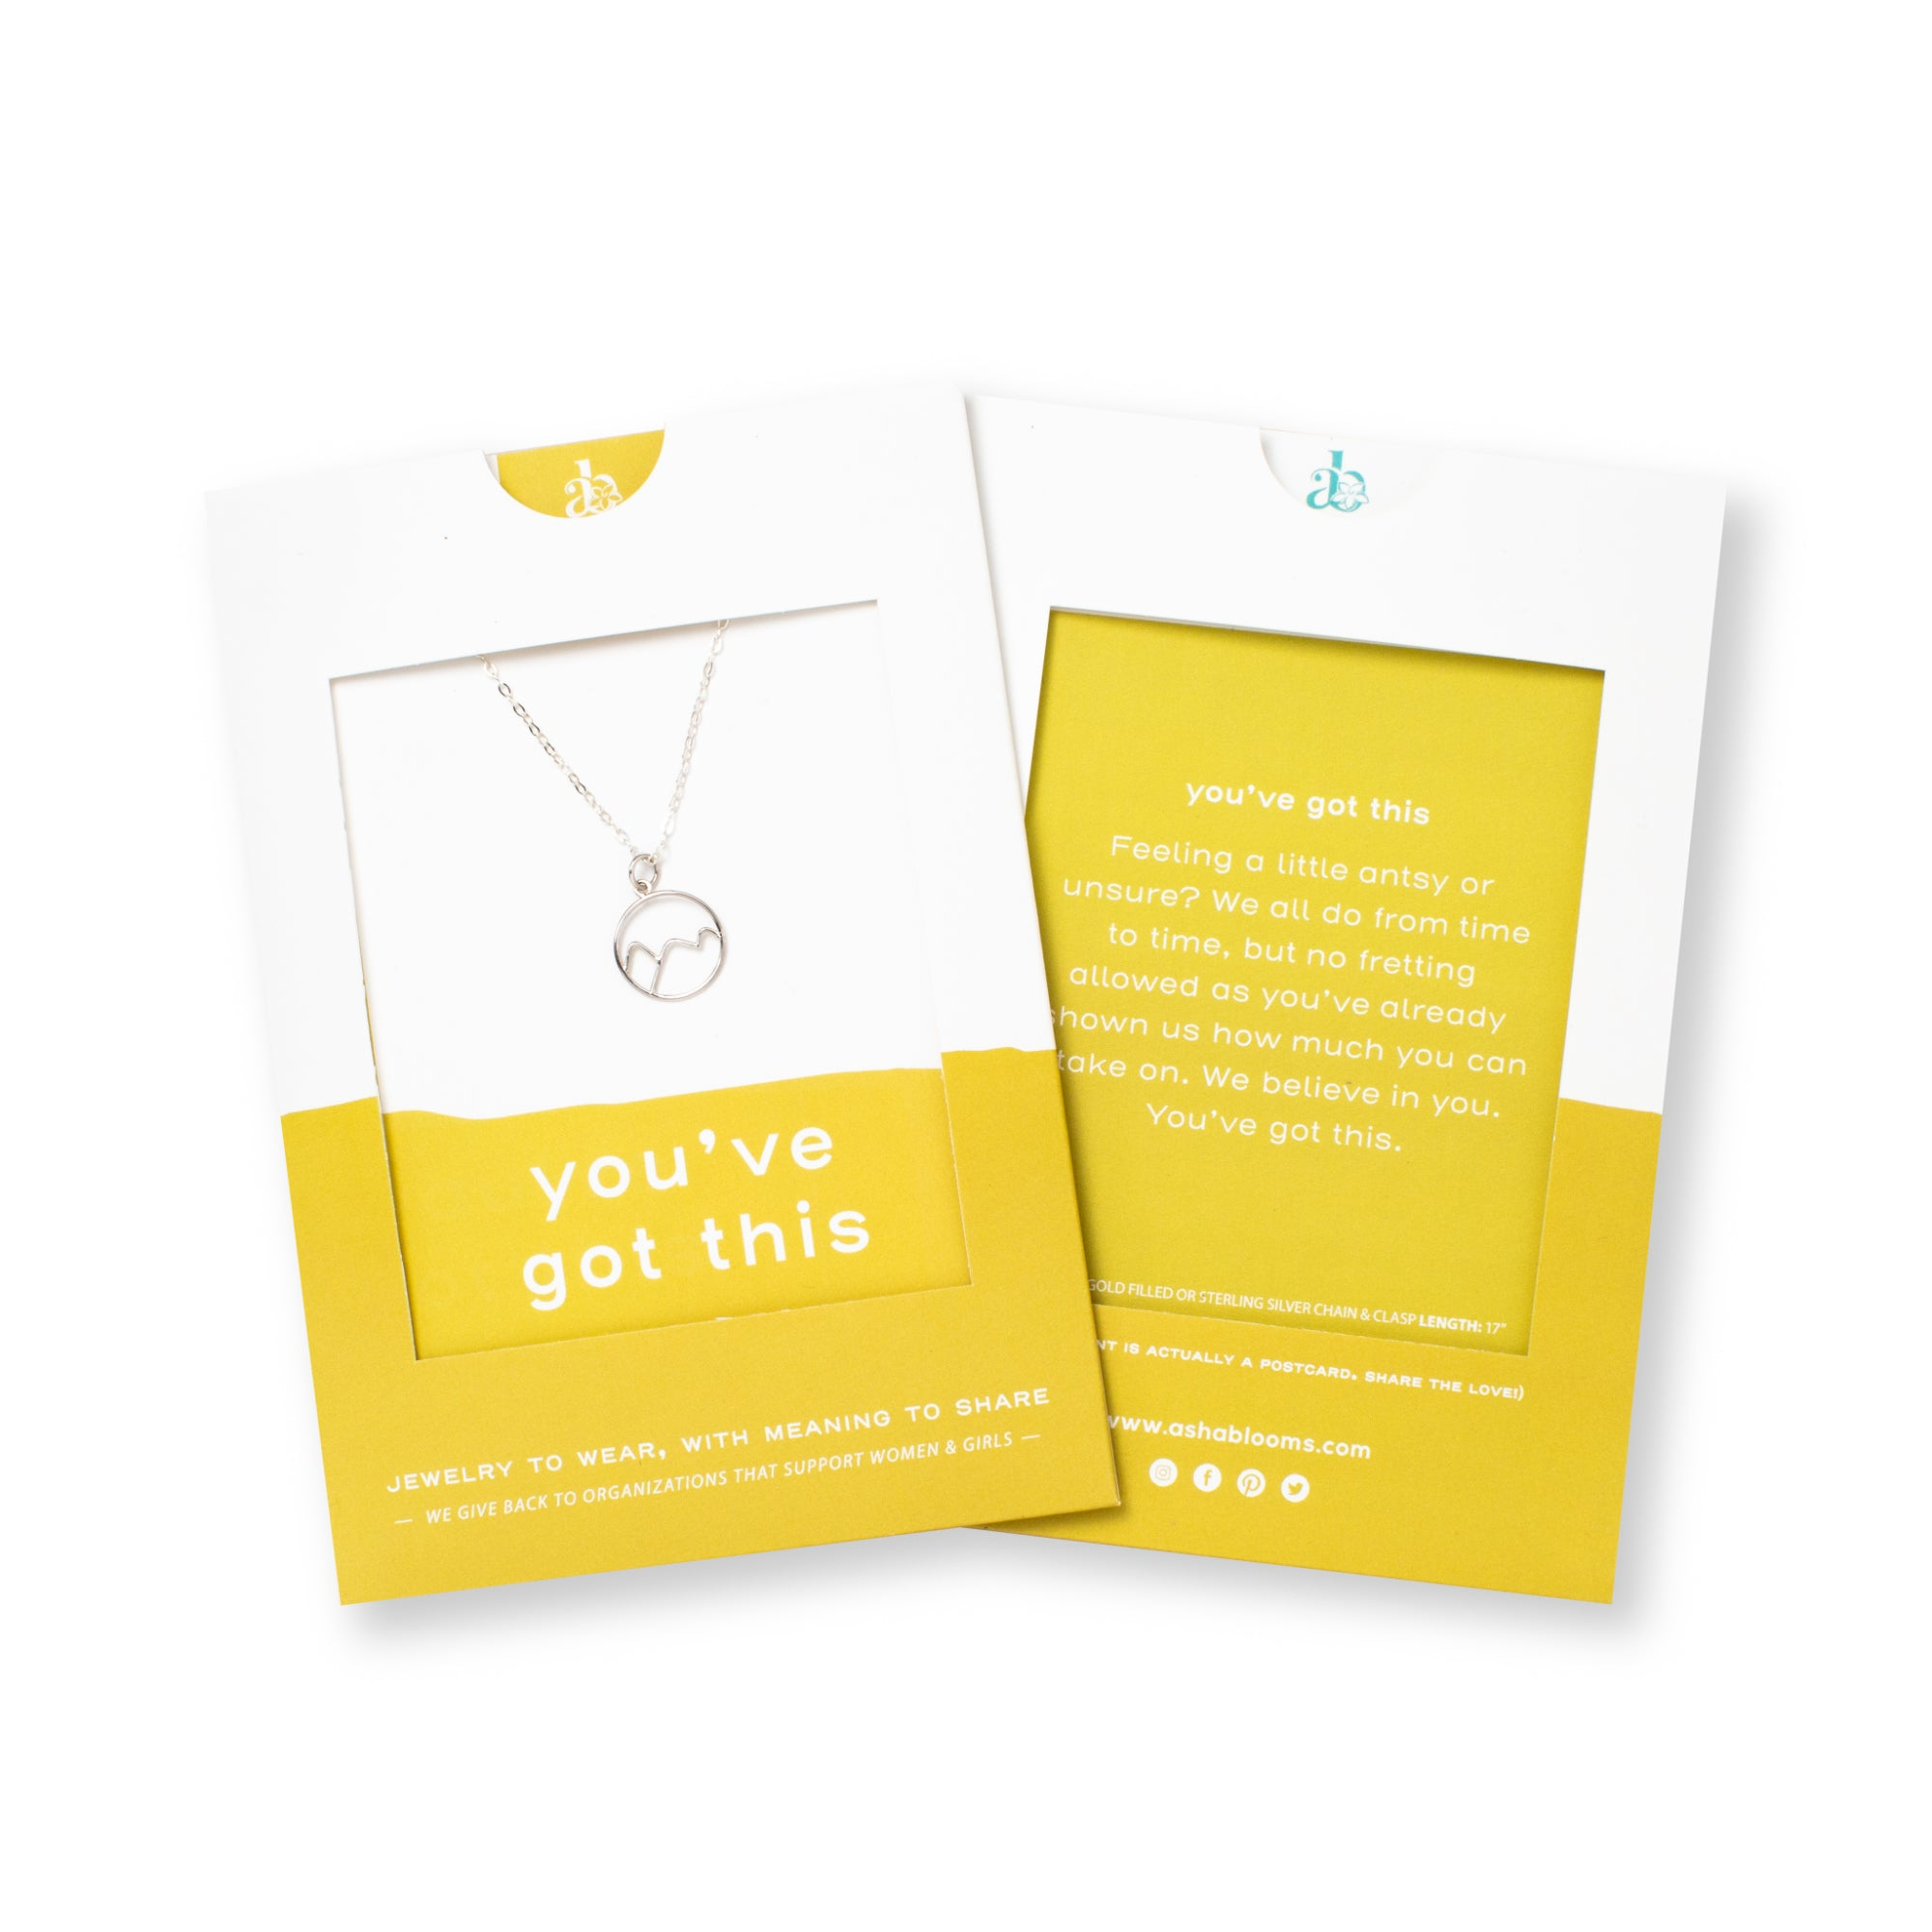 Silver Mountains Pendant Necklace 'You've Got This' in Yellow Gift Message Sleeve Packaging Photo by Asha Blooms